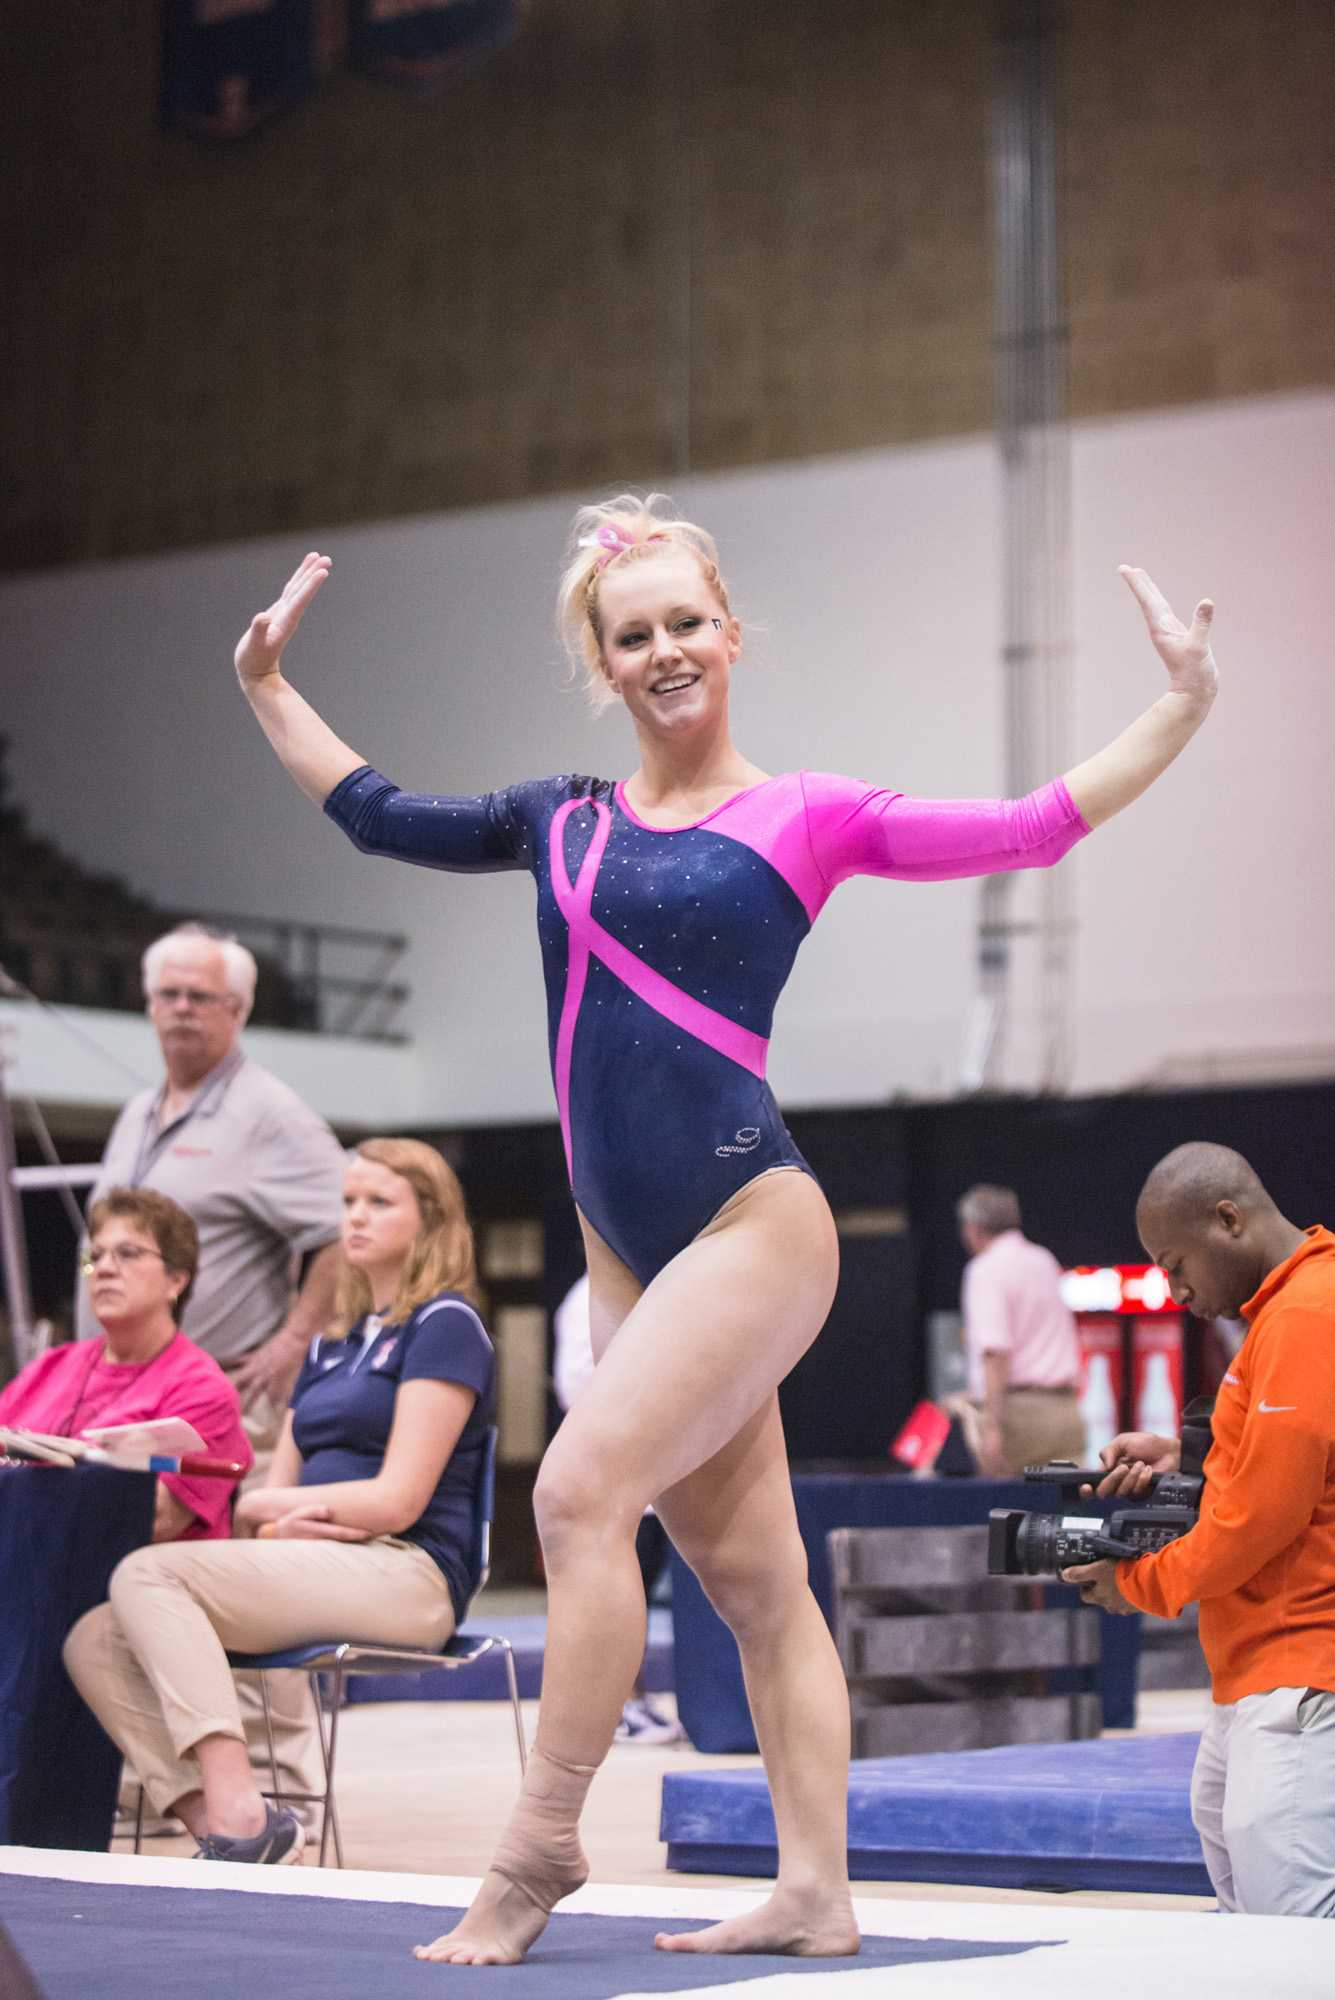 Illinois' Jordan Naleway performs a routine on the floor during the match against Penn State at Huff Hall on Saturday, Feb. 1, 2015. Naleway now works as an assistant student coach as she finishes up her undergraduate degree.